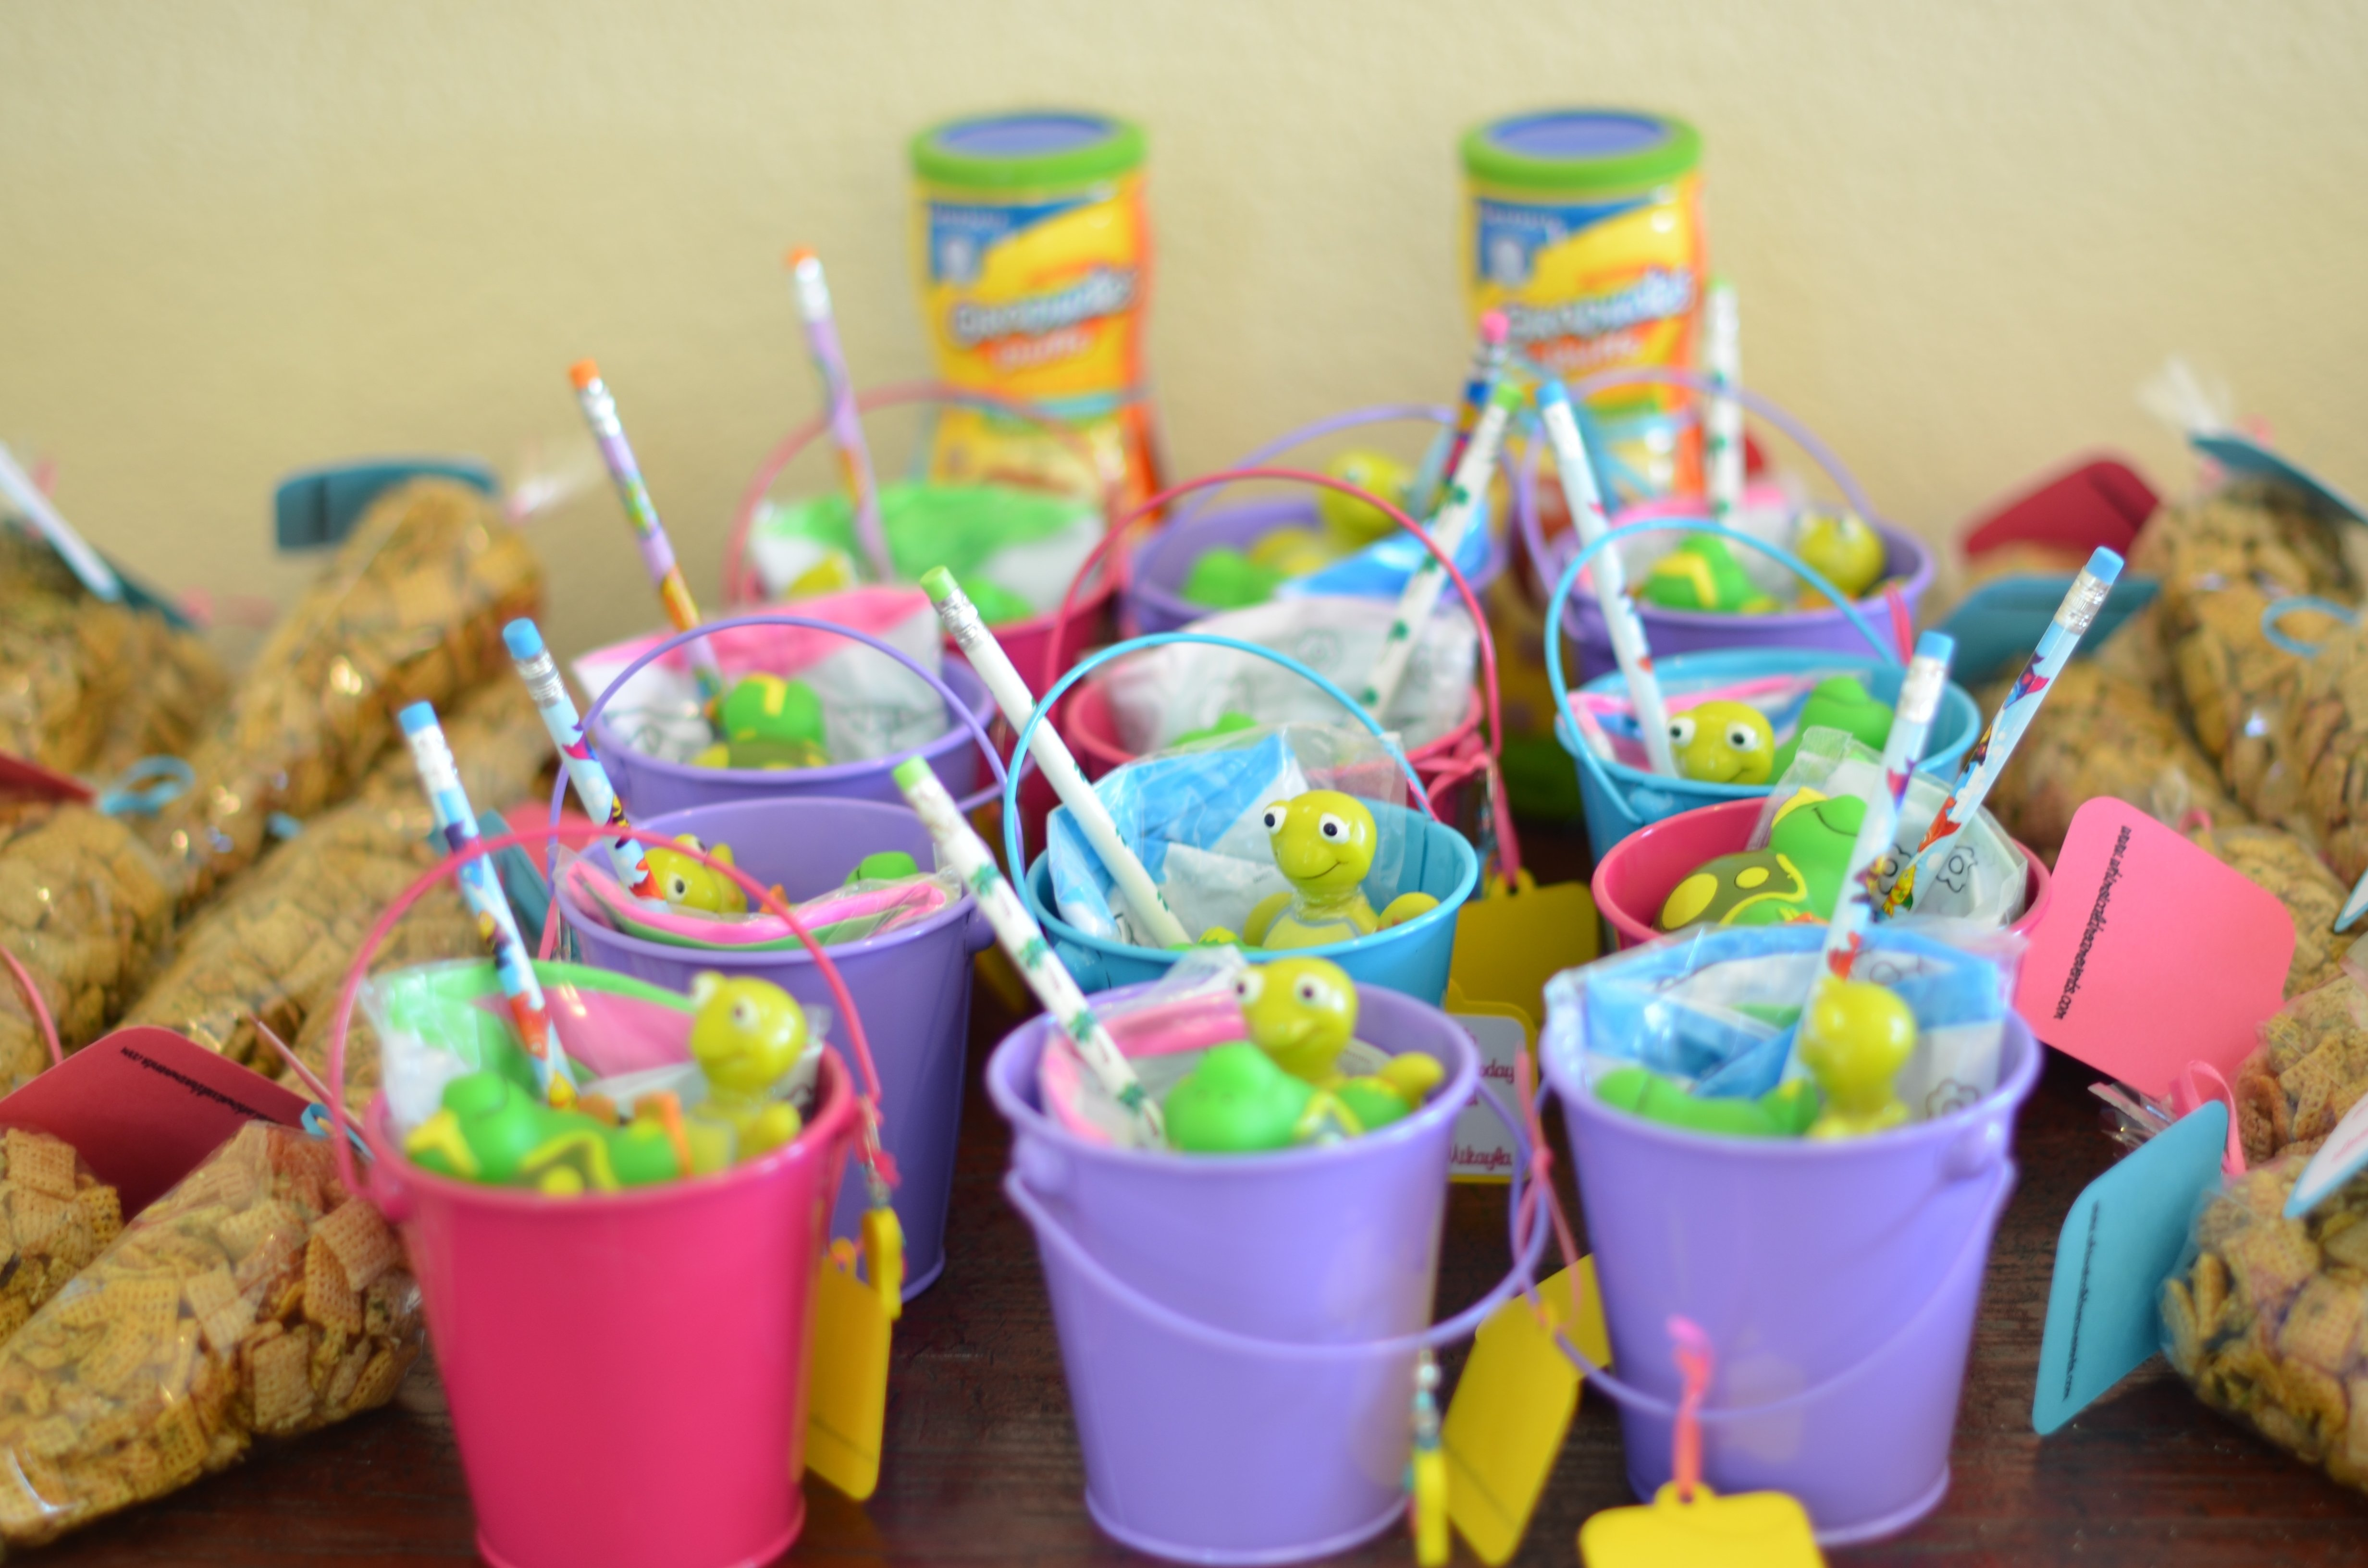 10 Most Popular Birthday Party Treat Bag Ideas gift bag ideas for kids birthday party fun gift bag ideas for kids 2021